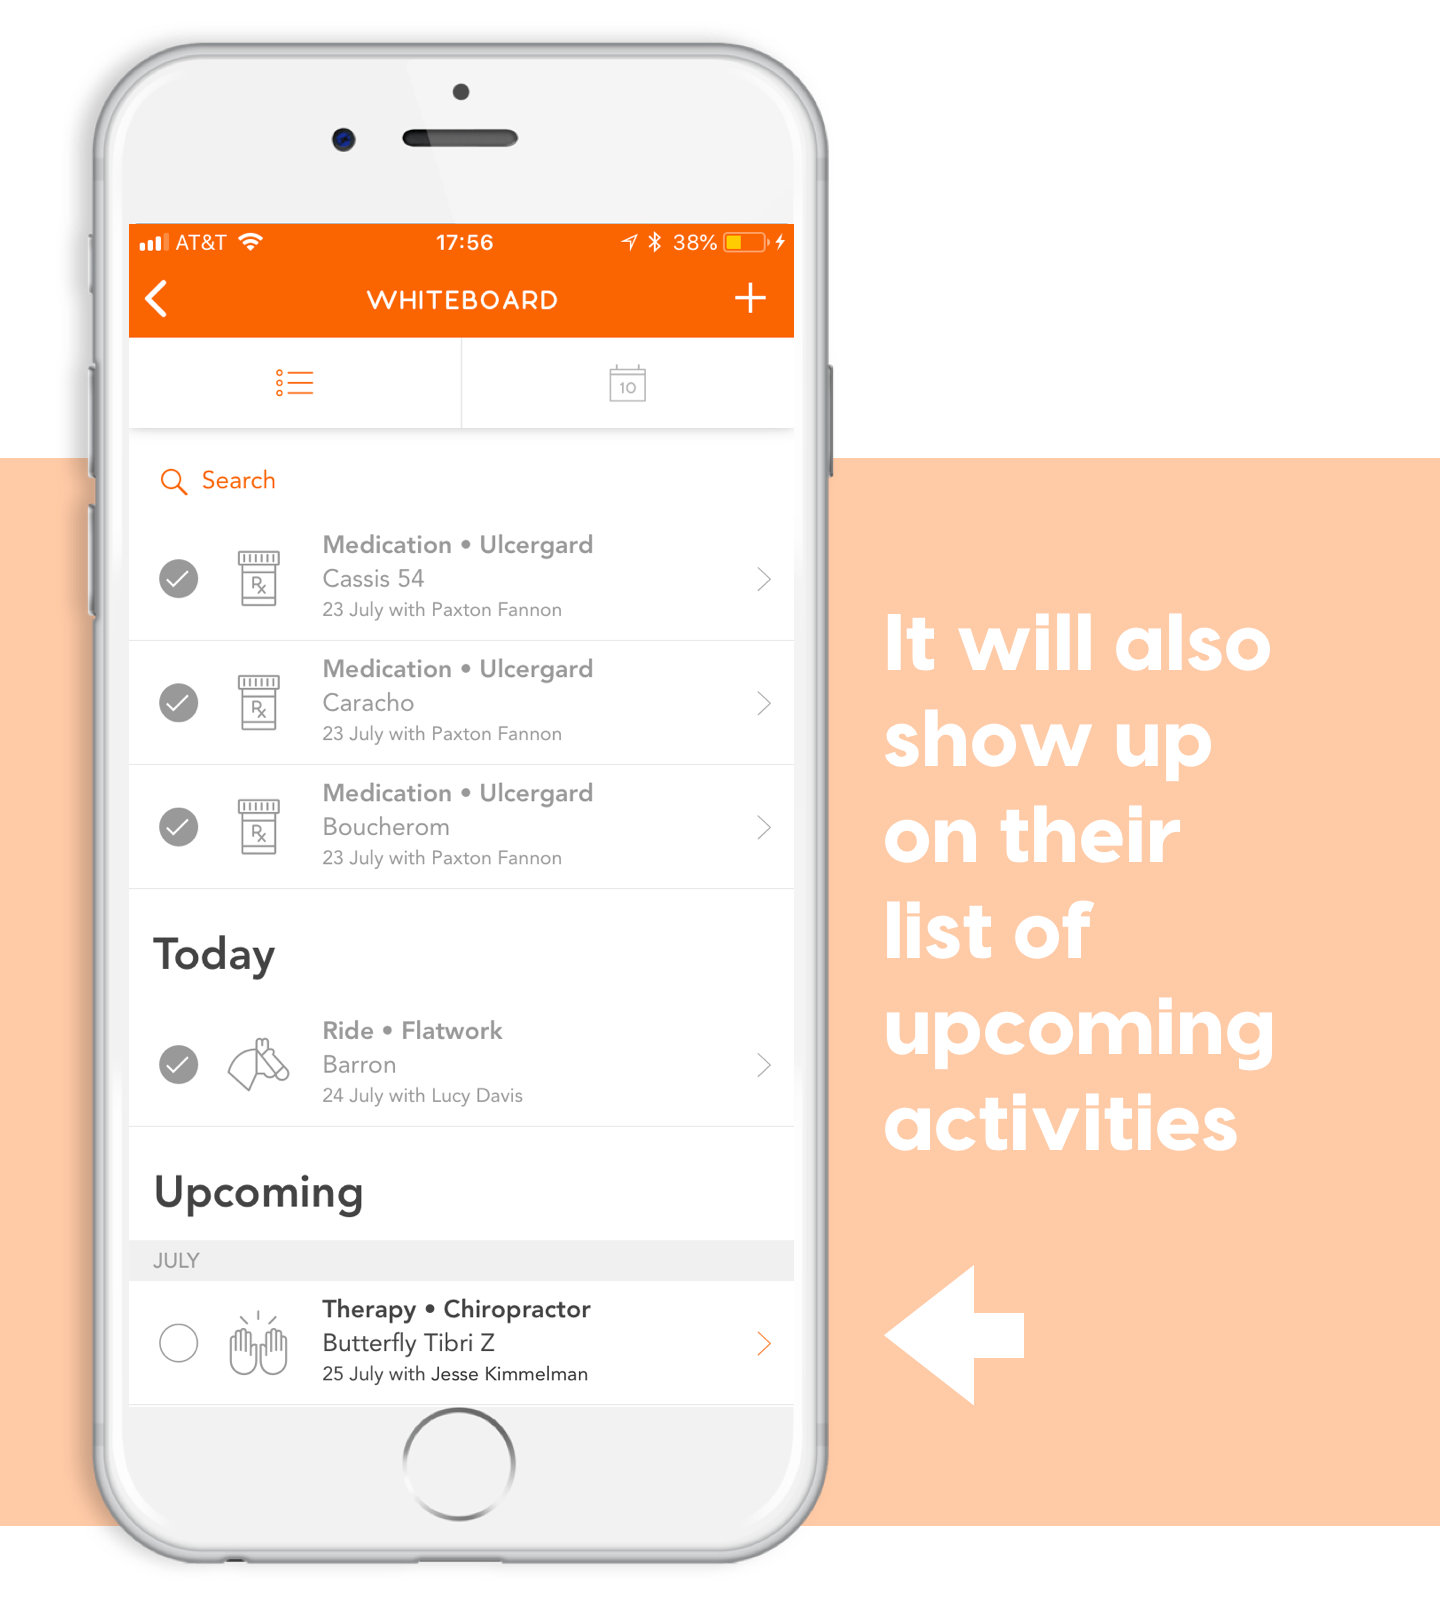 list of upcoming activities on ponyapp